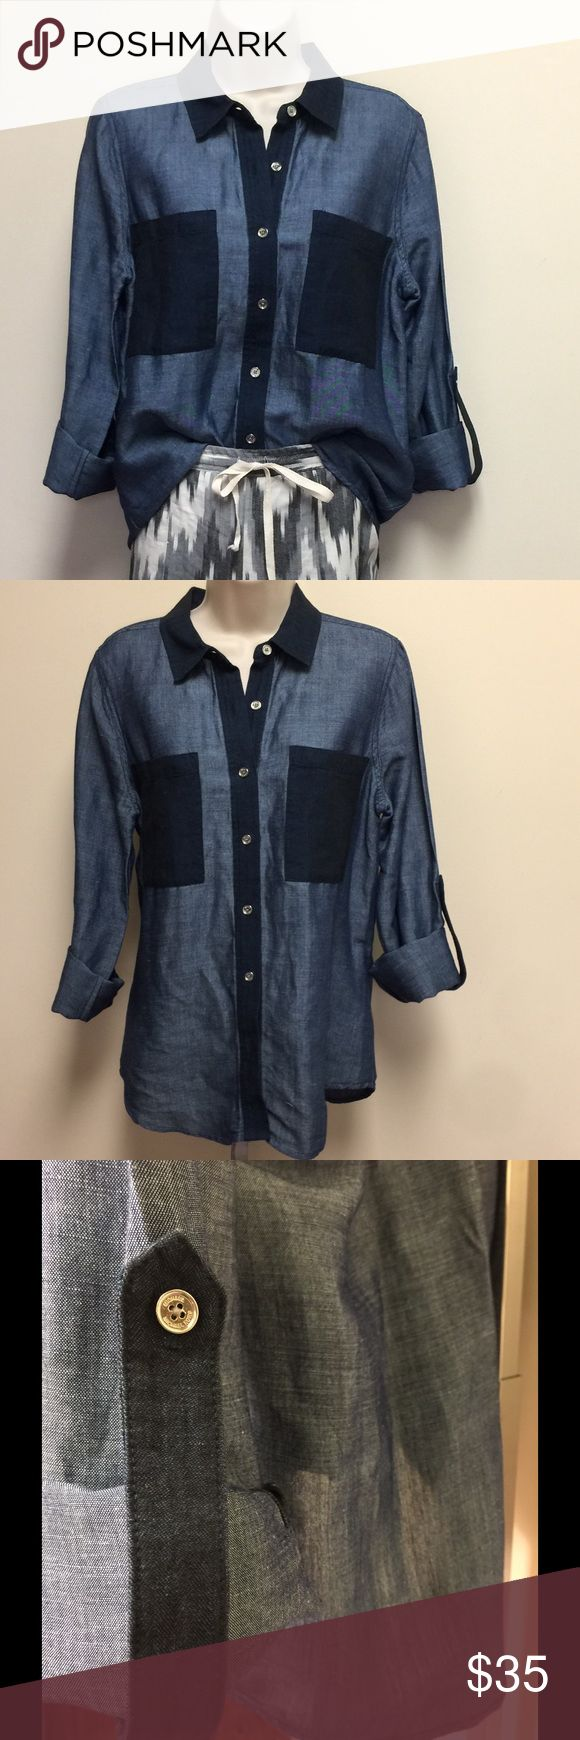 2 Tone Dark Wash Dressy Denim Button Down Top Dresses up or down really well, perfect condition, worn twice, thinner than most Denim, a bit shiny, unique for a very versatile Denim button down! MICHAEL Michael Kors Tops Button Down Shirts